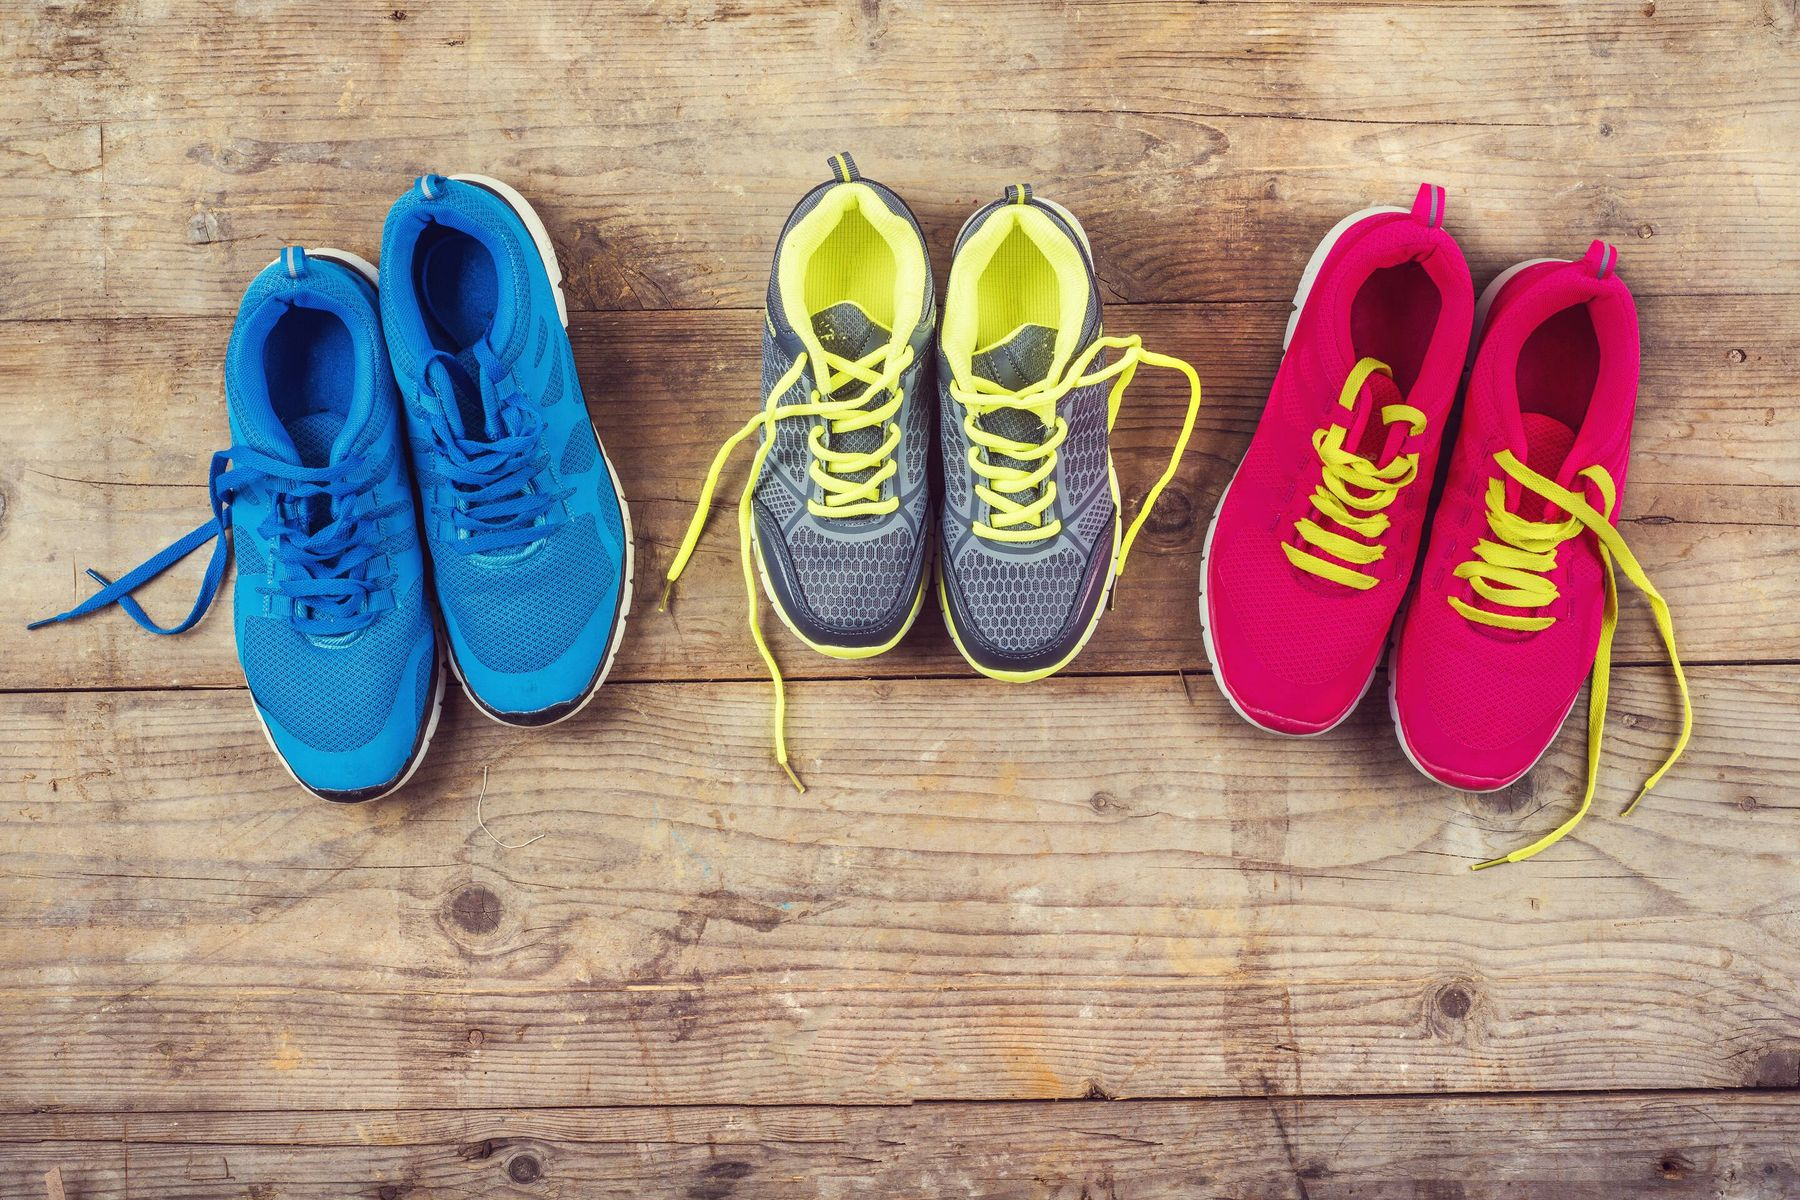 Amazing Tips to Keep Your Sports Shoes Smelling Great!